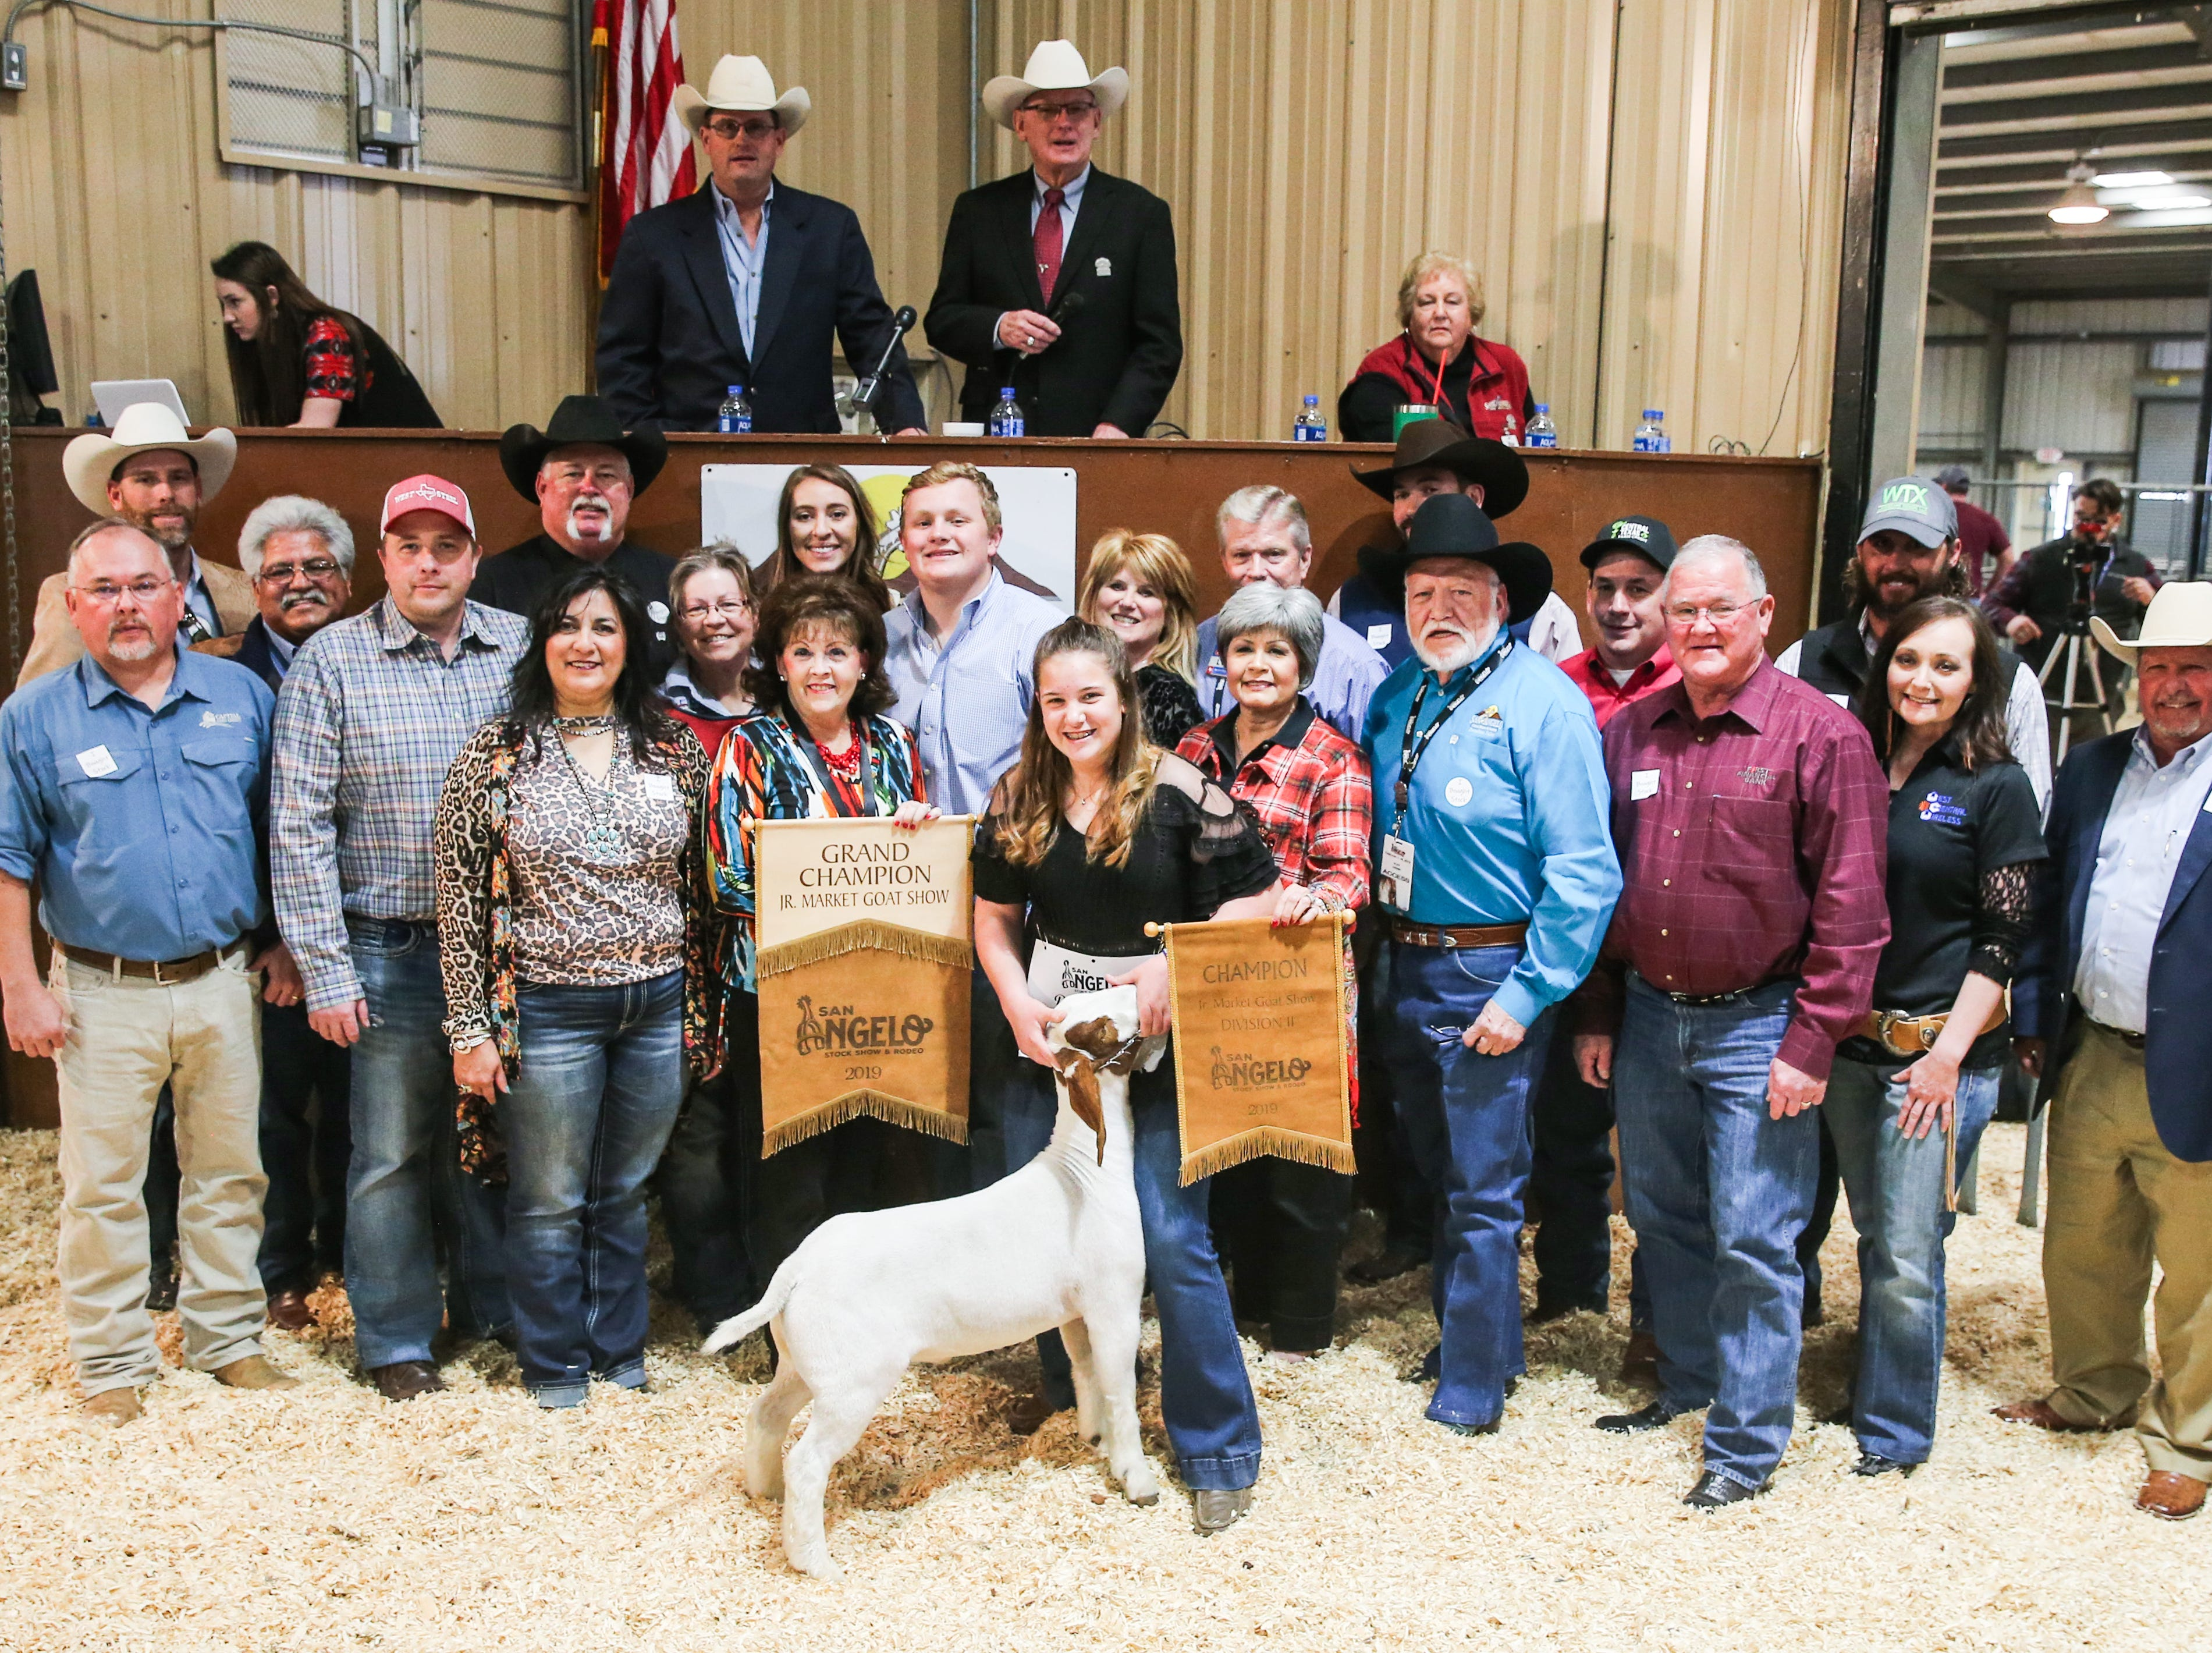 Grand Champion Market Goat exhibited by Dakota Martin with Mason County 4-H sold for $23,000.From left to right: Tyler Wright, Findaranch.com; Randy Dupree, Capital Farm Credit; Raymond Meza, Twin Mountain Fence Company; Bubba Davis, West Texas Steel; Mike Martin, Goode Construction; Sylvia Flores, San Angelo Standard Times; Dawn Foster, No Step Ranch; Maddie Seaver, Little Caeser's; Vicki Loso, 1st Community Federal Credit Union; Slone Stultz (holding banner); Dakota Martin (exhibitor); Raleigh Little, The Bank and Trust; Lynn Shipley, H-E-B; Toni Sudduth, Trans Texas Southwest Credit Union; Cooper Hogg, City Lumber; Clay Cross, Cross Country Construction; Wade Polk, Central Texas Farm Credit; Lindy George, First Financial Bank; Chris Knapp, WTX Landscape; Jennifer Armor, West Central Wireless; Todd Price, Jim Bass Ford. Not pictured: Acme Brick, Galen & Kristen Schwartz; Neff Livestock.